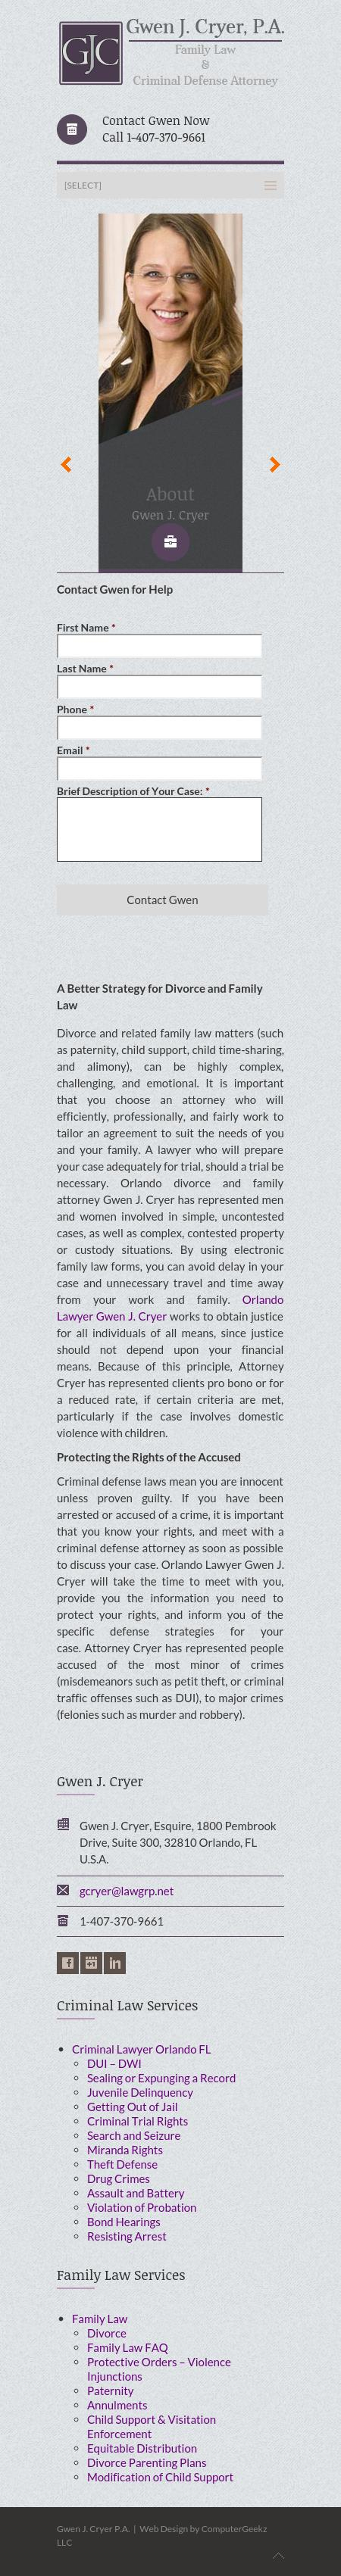 Gwen J. Cryer, Attorney at Law - Orlando FL Lawyers